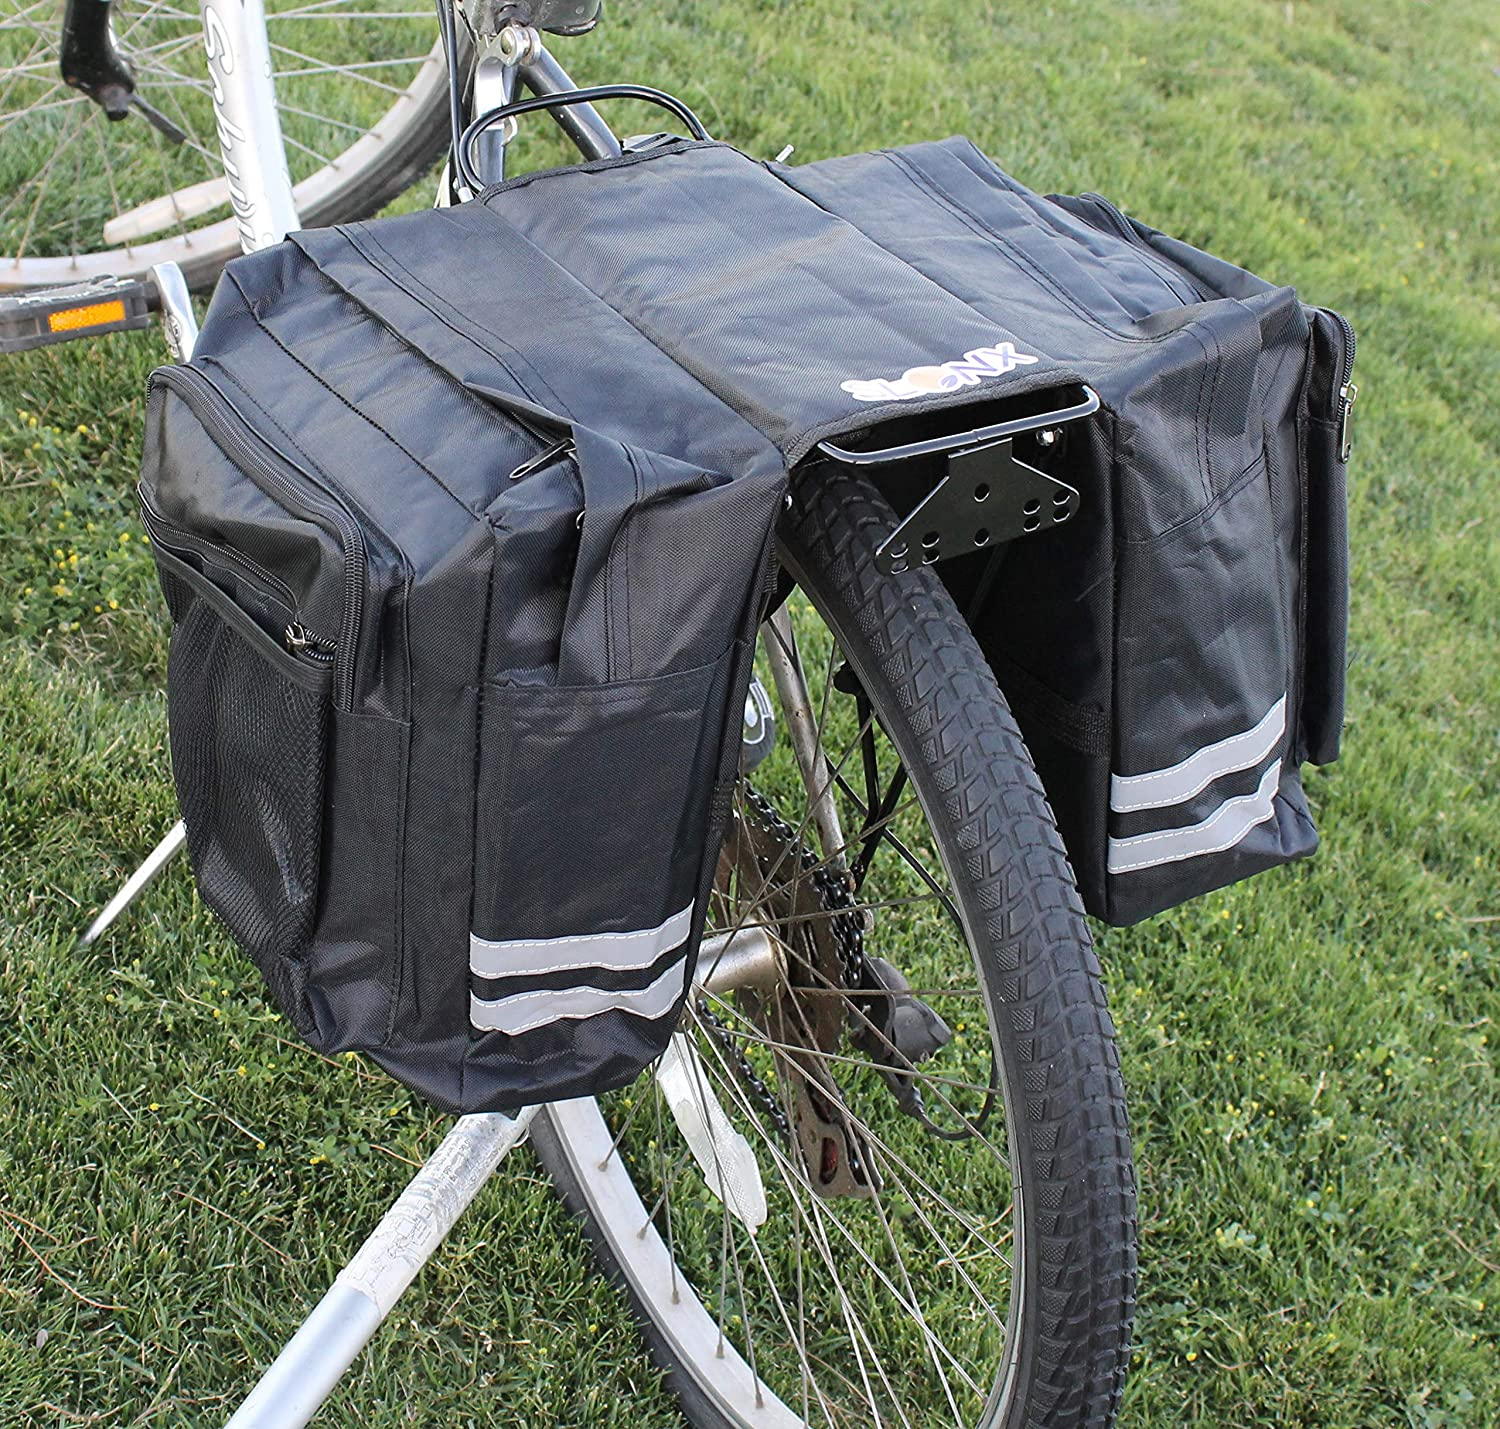 2 Reflective Lights Included for Road Safety Double Sided Panniers for Bicycles Rear Rack Water and Tear Resistant Saddle Bag with Multiple Pockets and Adjustable Straps SlonX Bike Bags